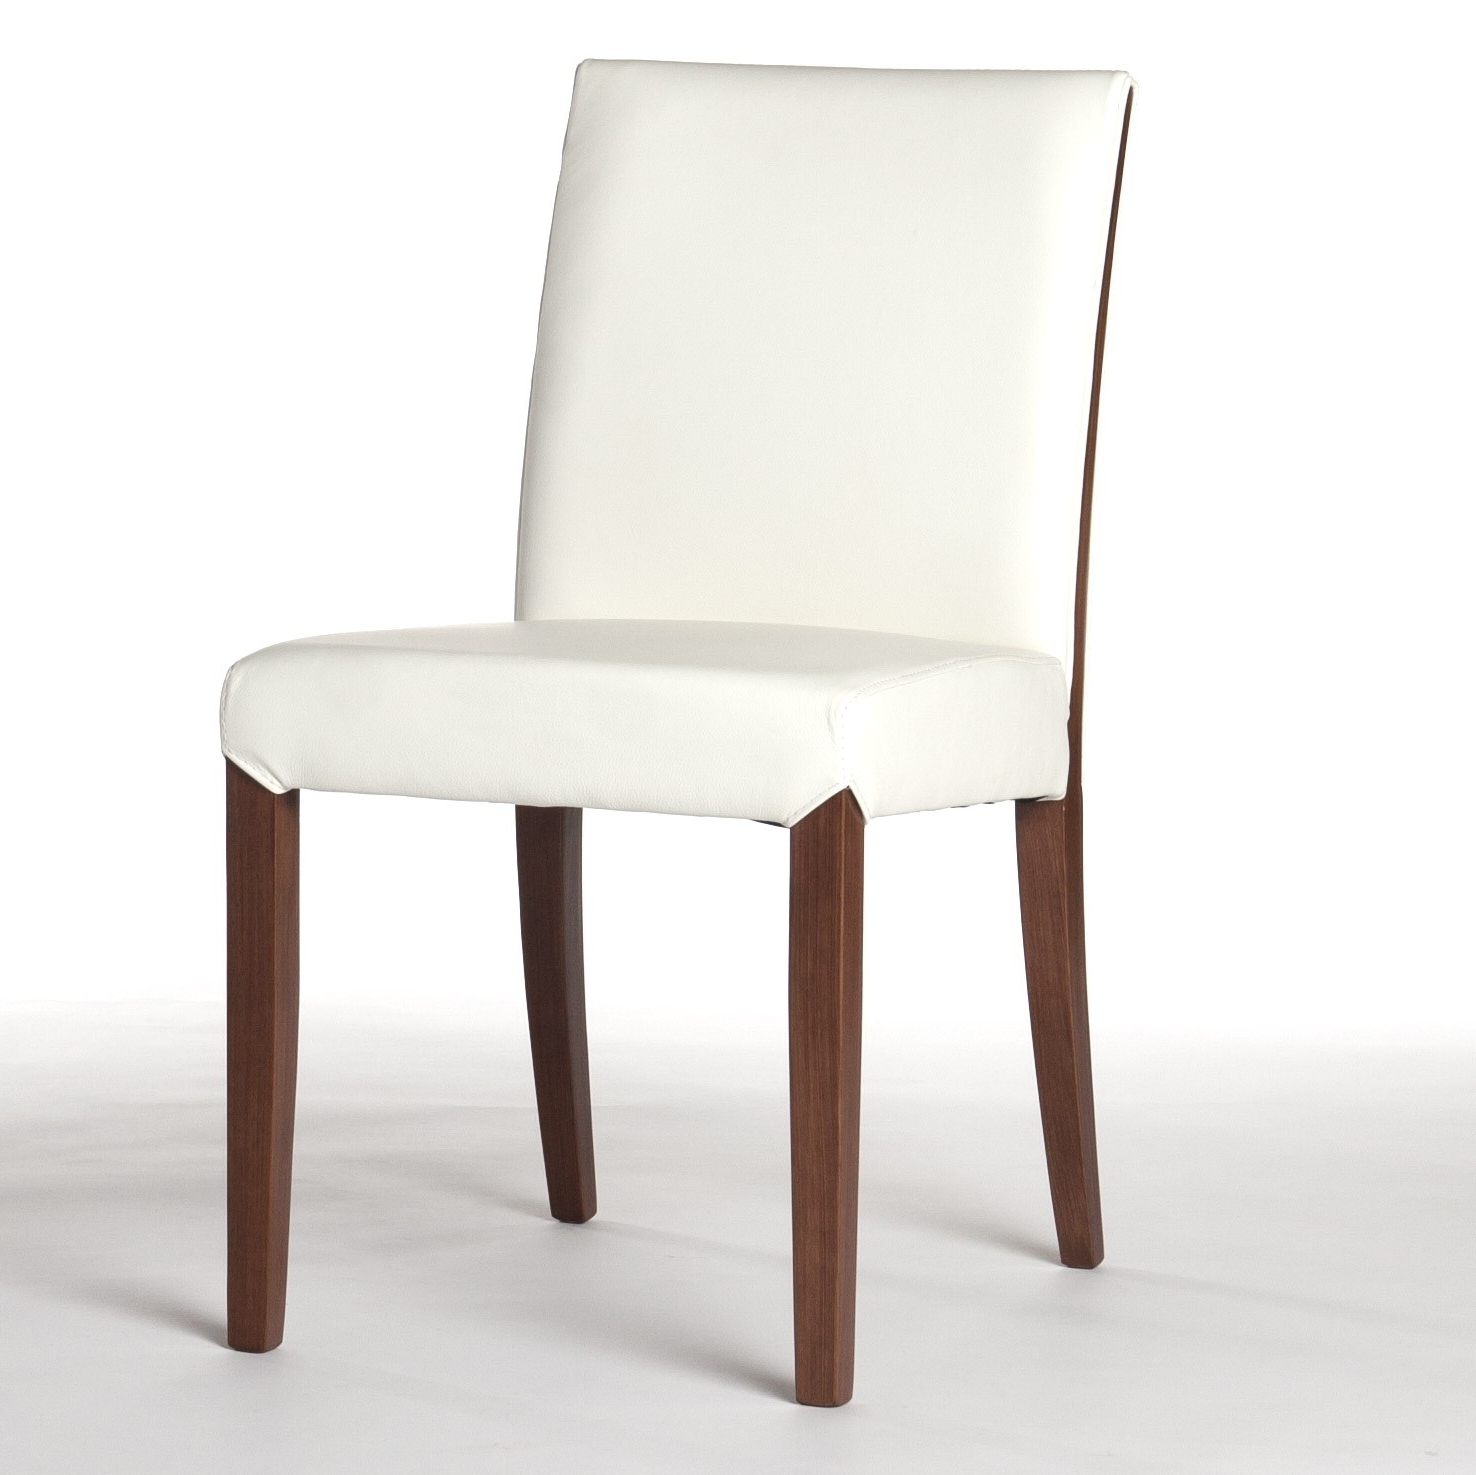 Real Leather Dining Chair In White Intended For Current Real Leather Dining Chairs (View 5 of 25)